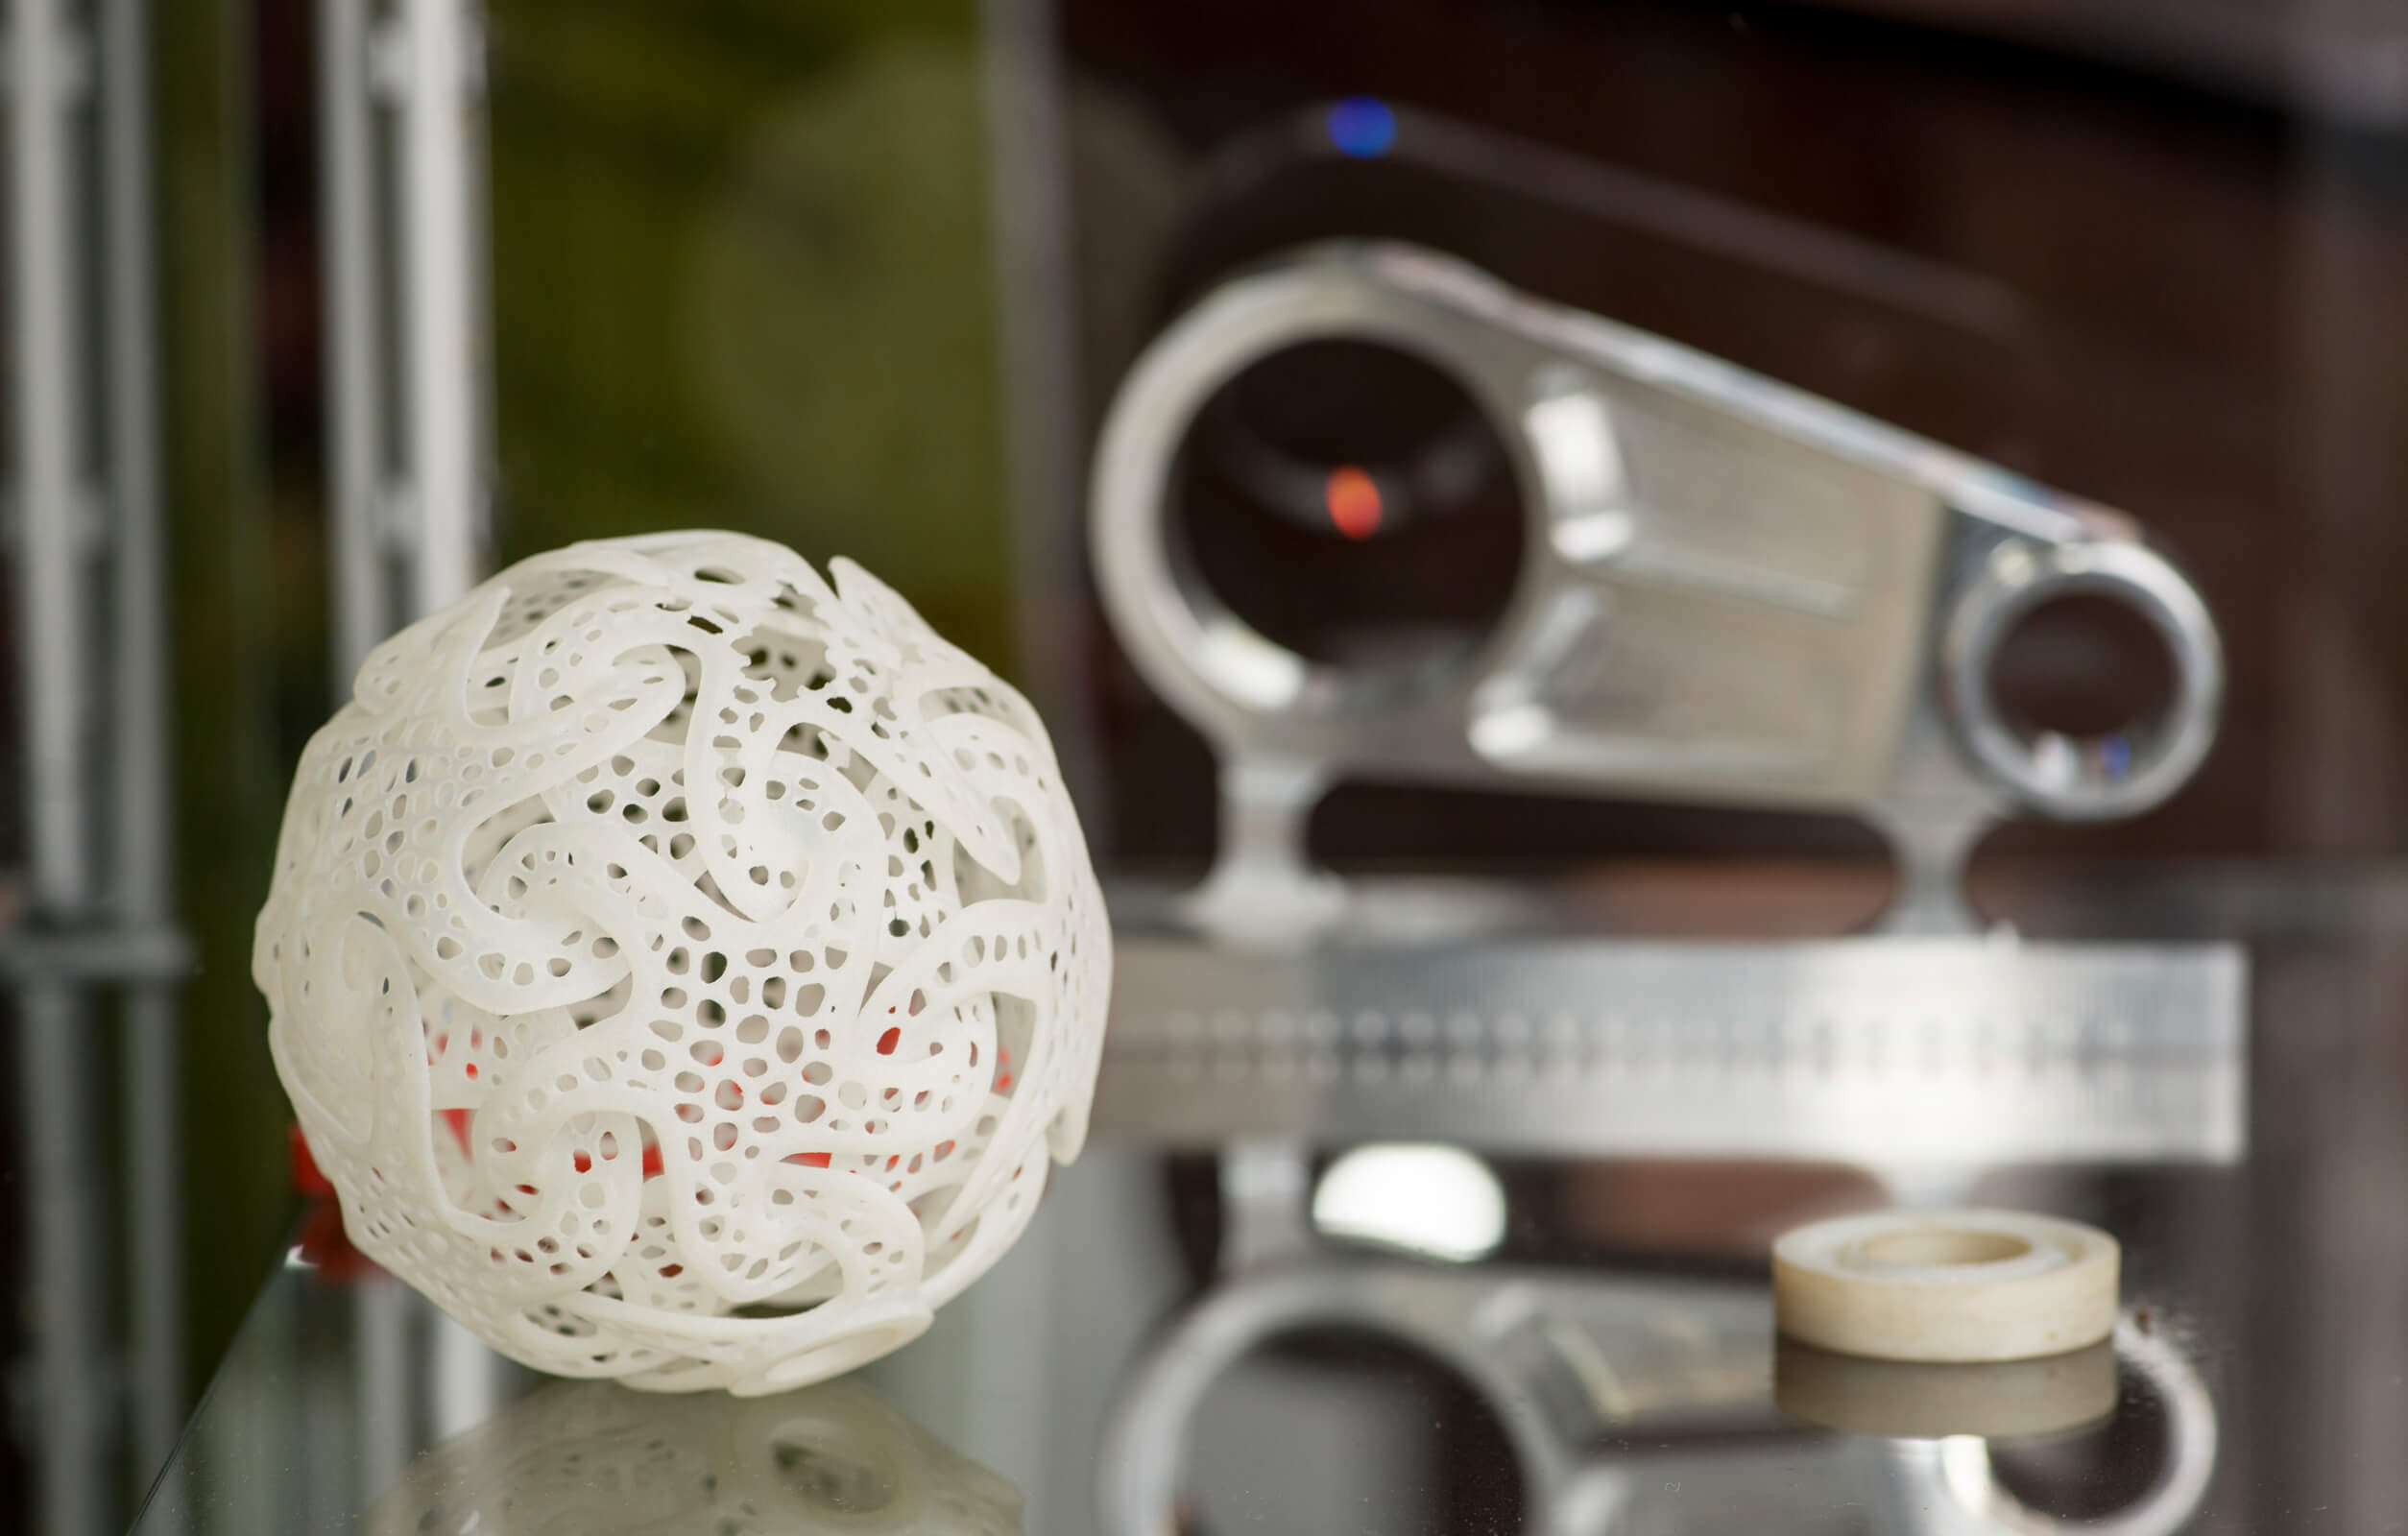 image of a 3d ball of lace and a machine that has created it